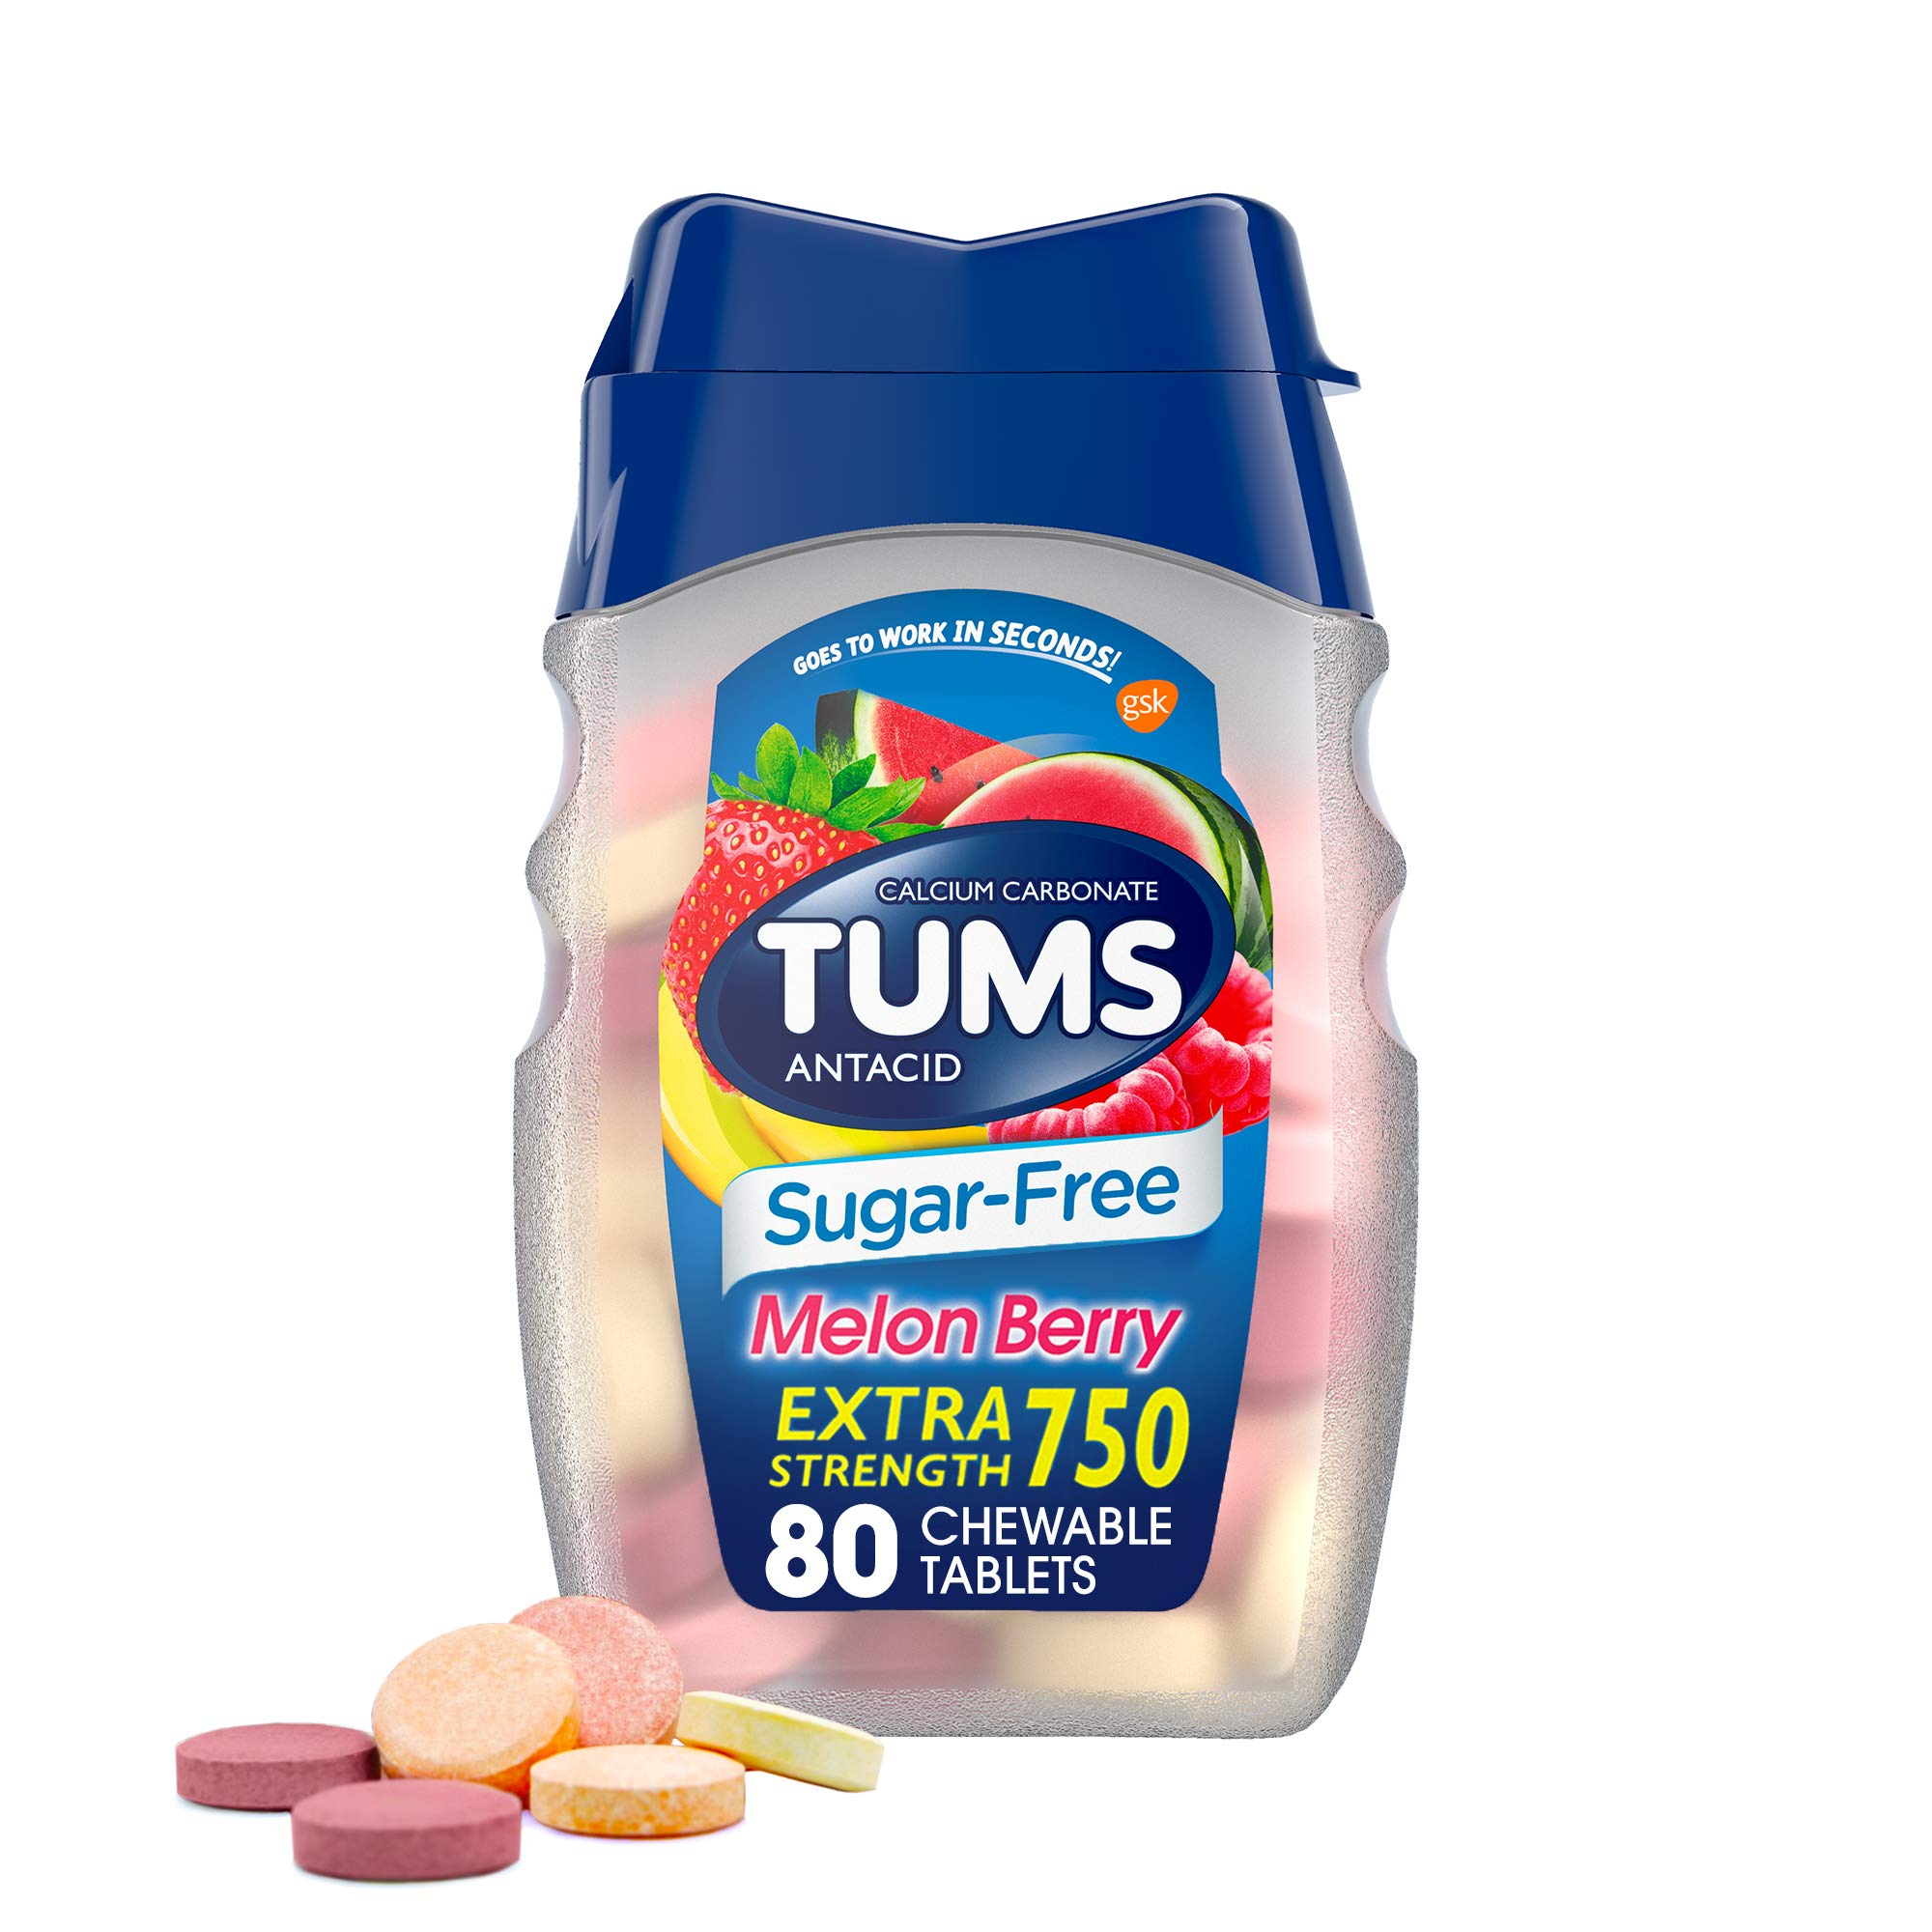 TUMS Extra Strength Sugar-Free Antacid Chewable Tablets, Melon Berry, 80Count